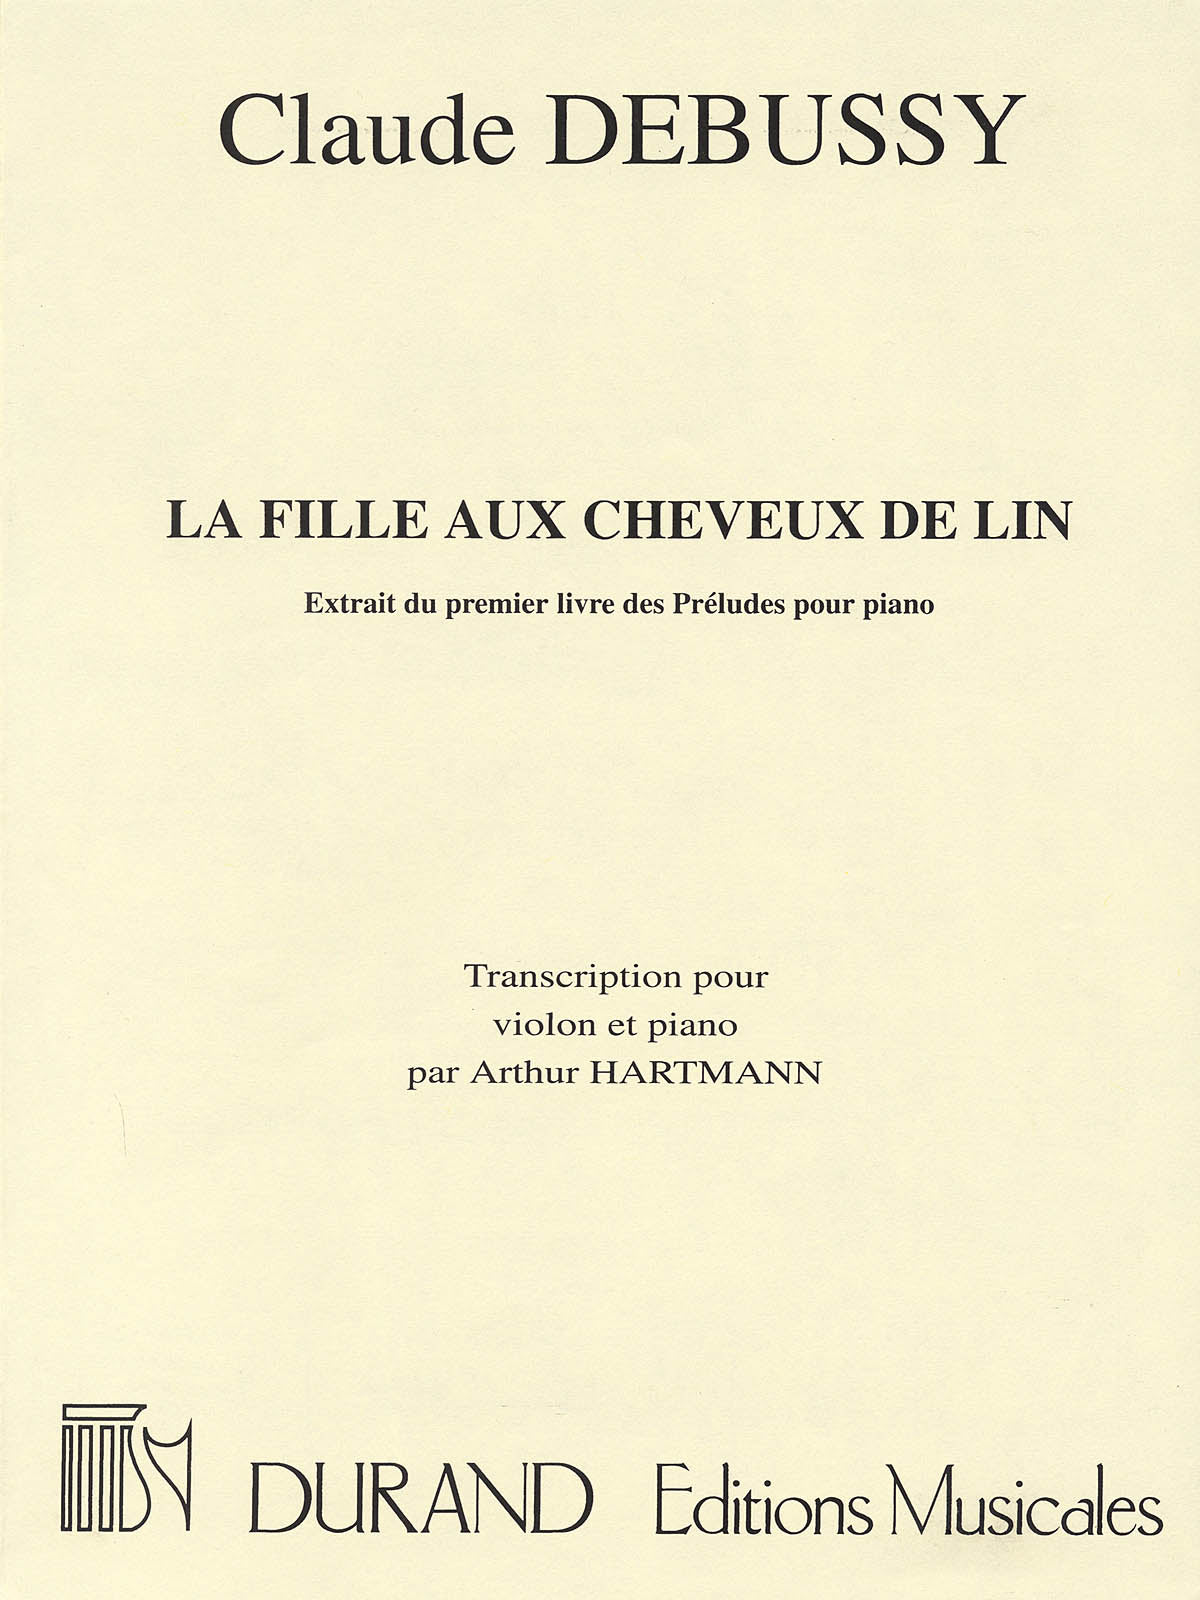 Debussy: La fille aux cheveux de lin (arr. for violin & piano)